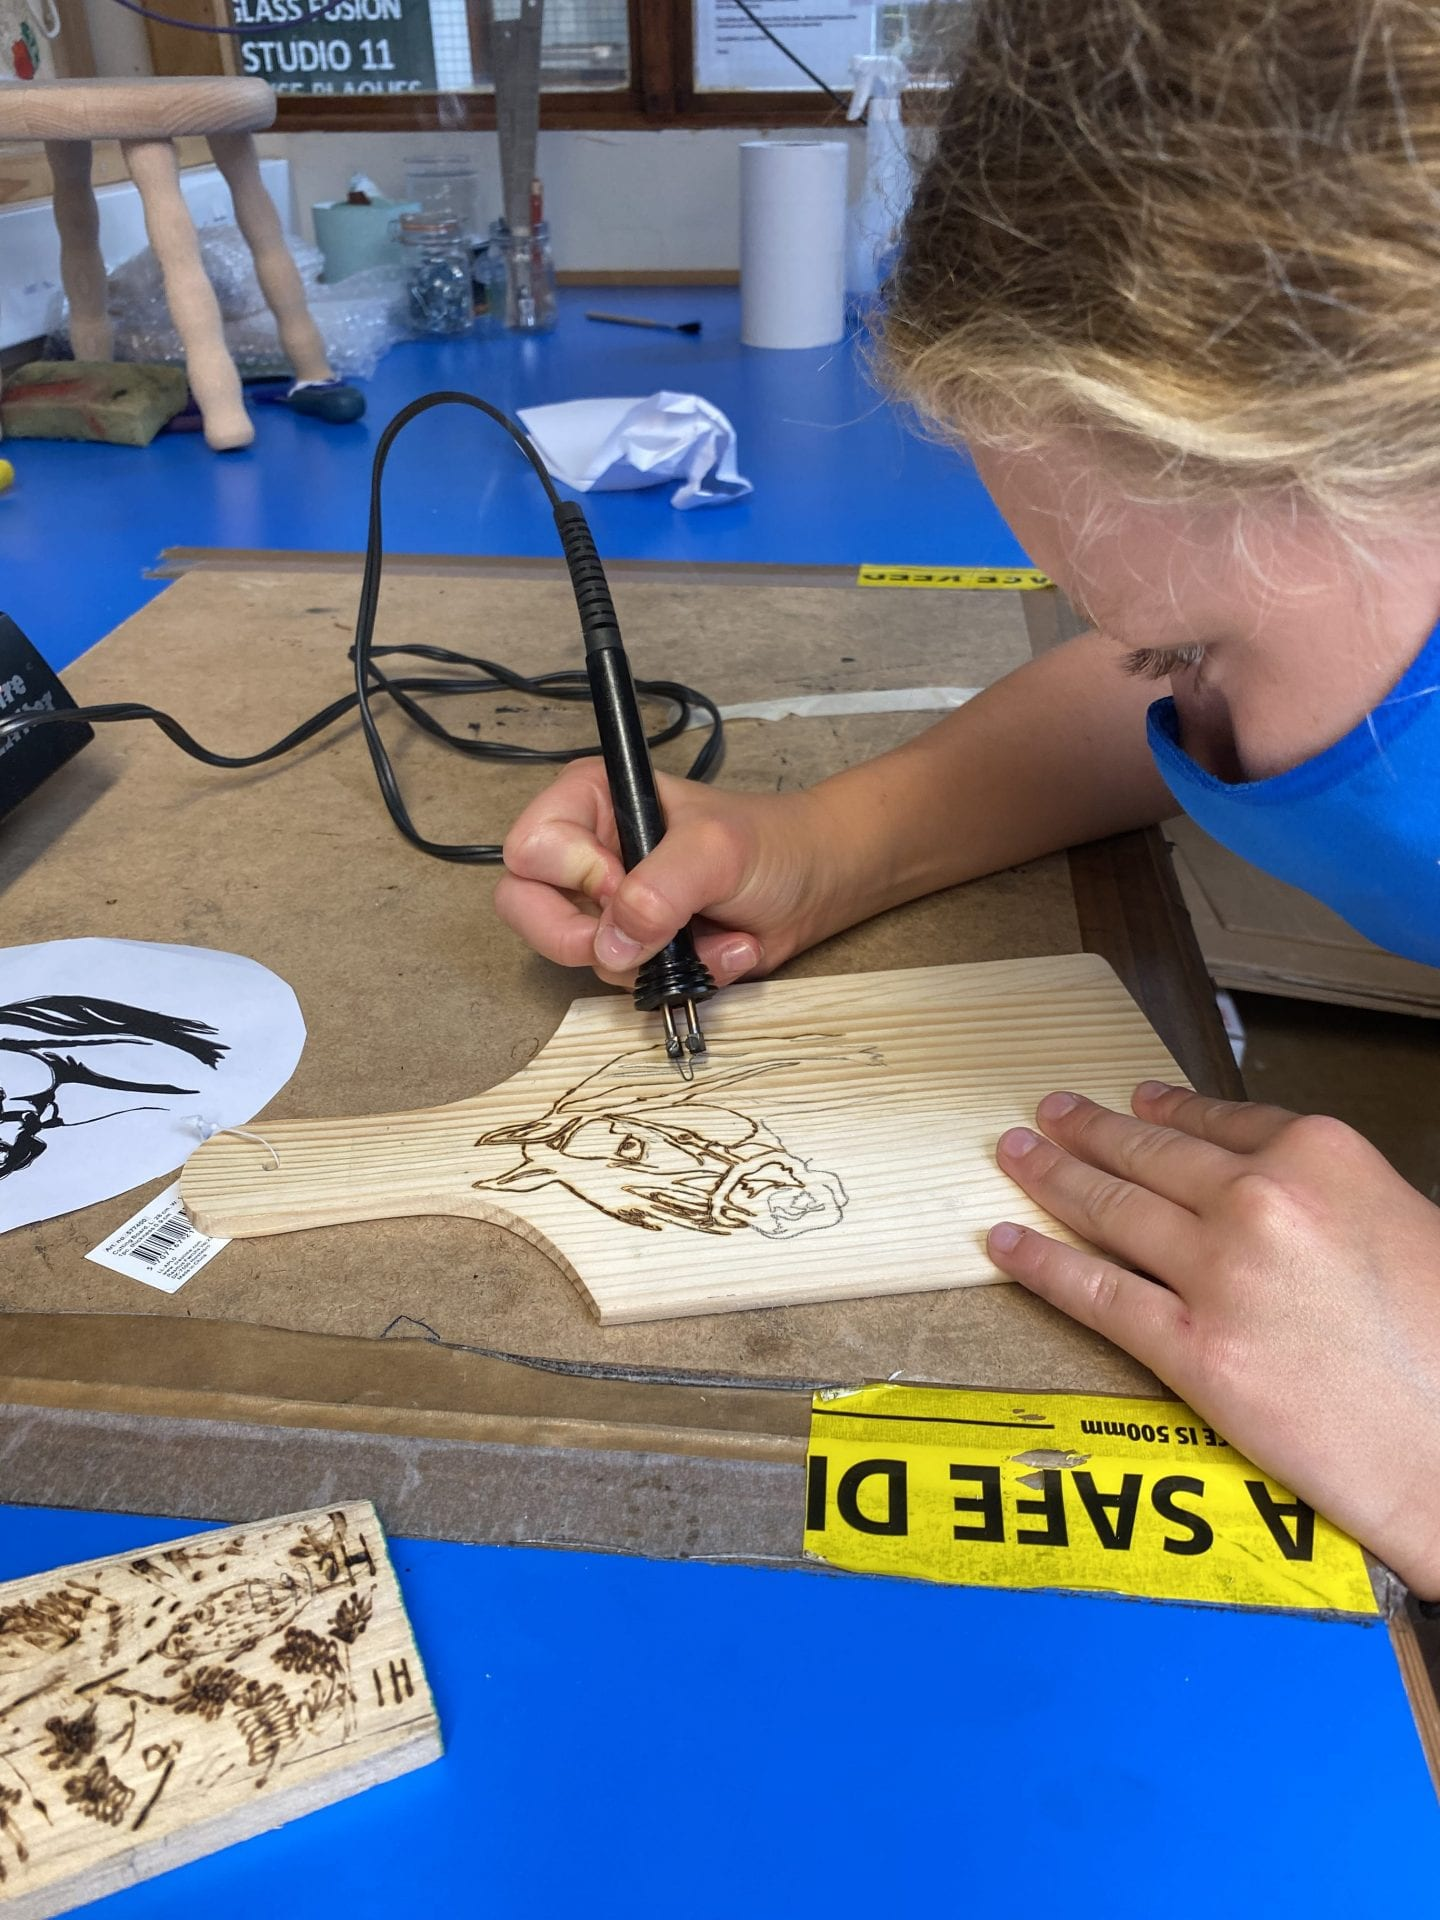 A young girl using pyrography to draw a horse on a small wooden chopping board